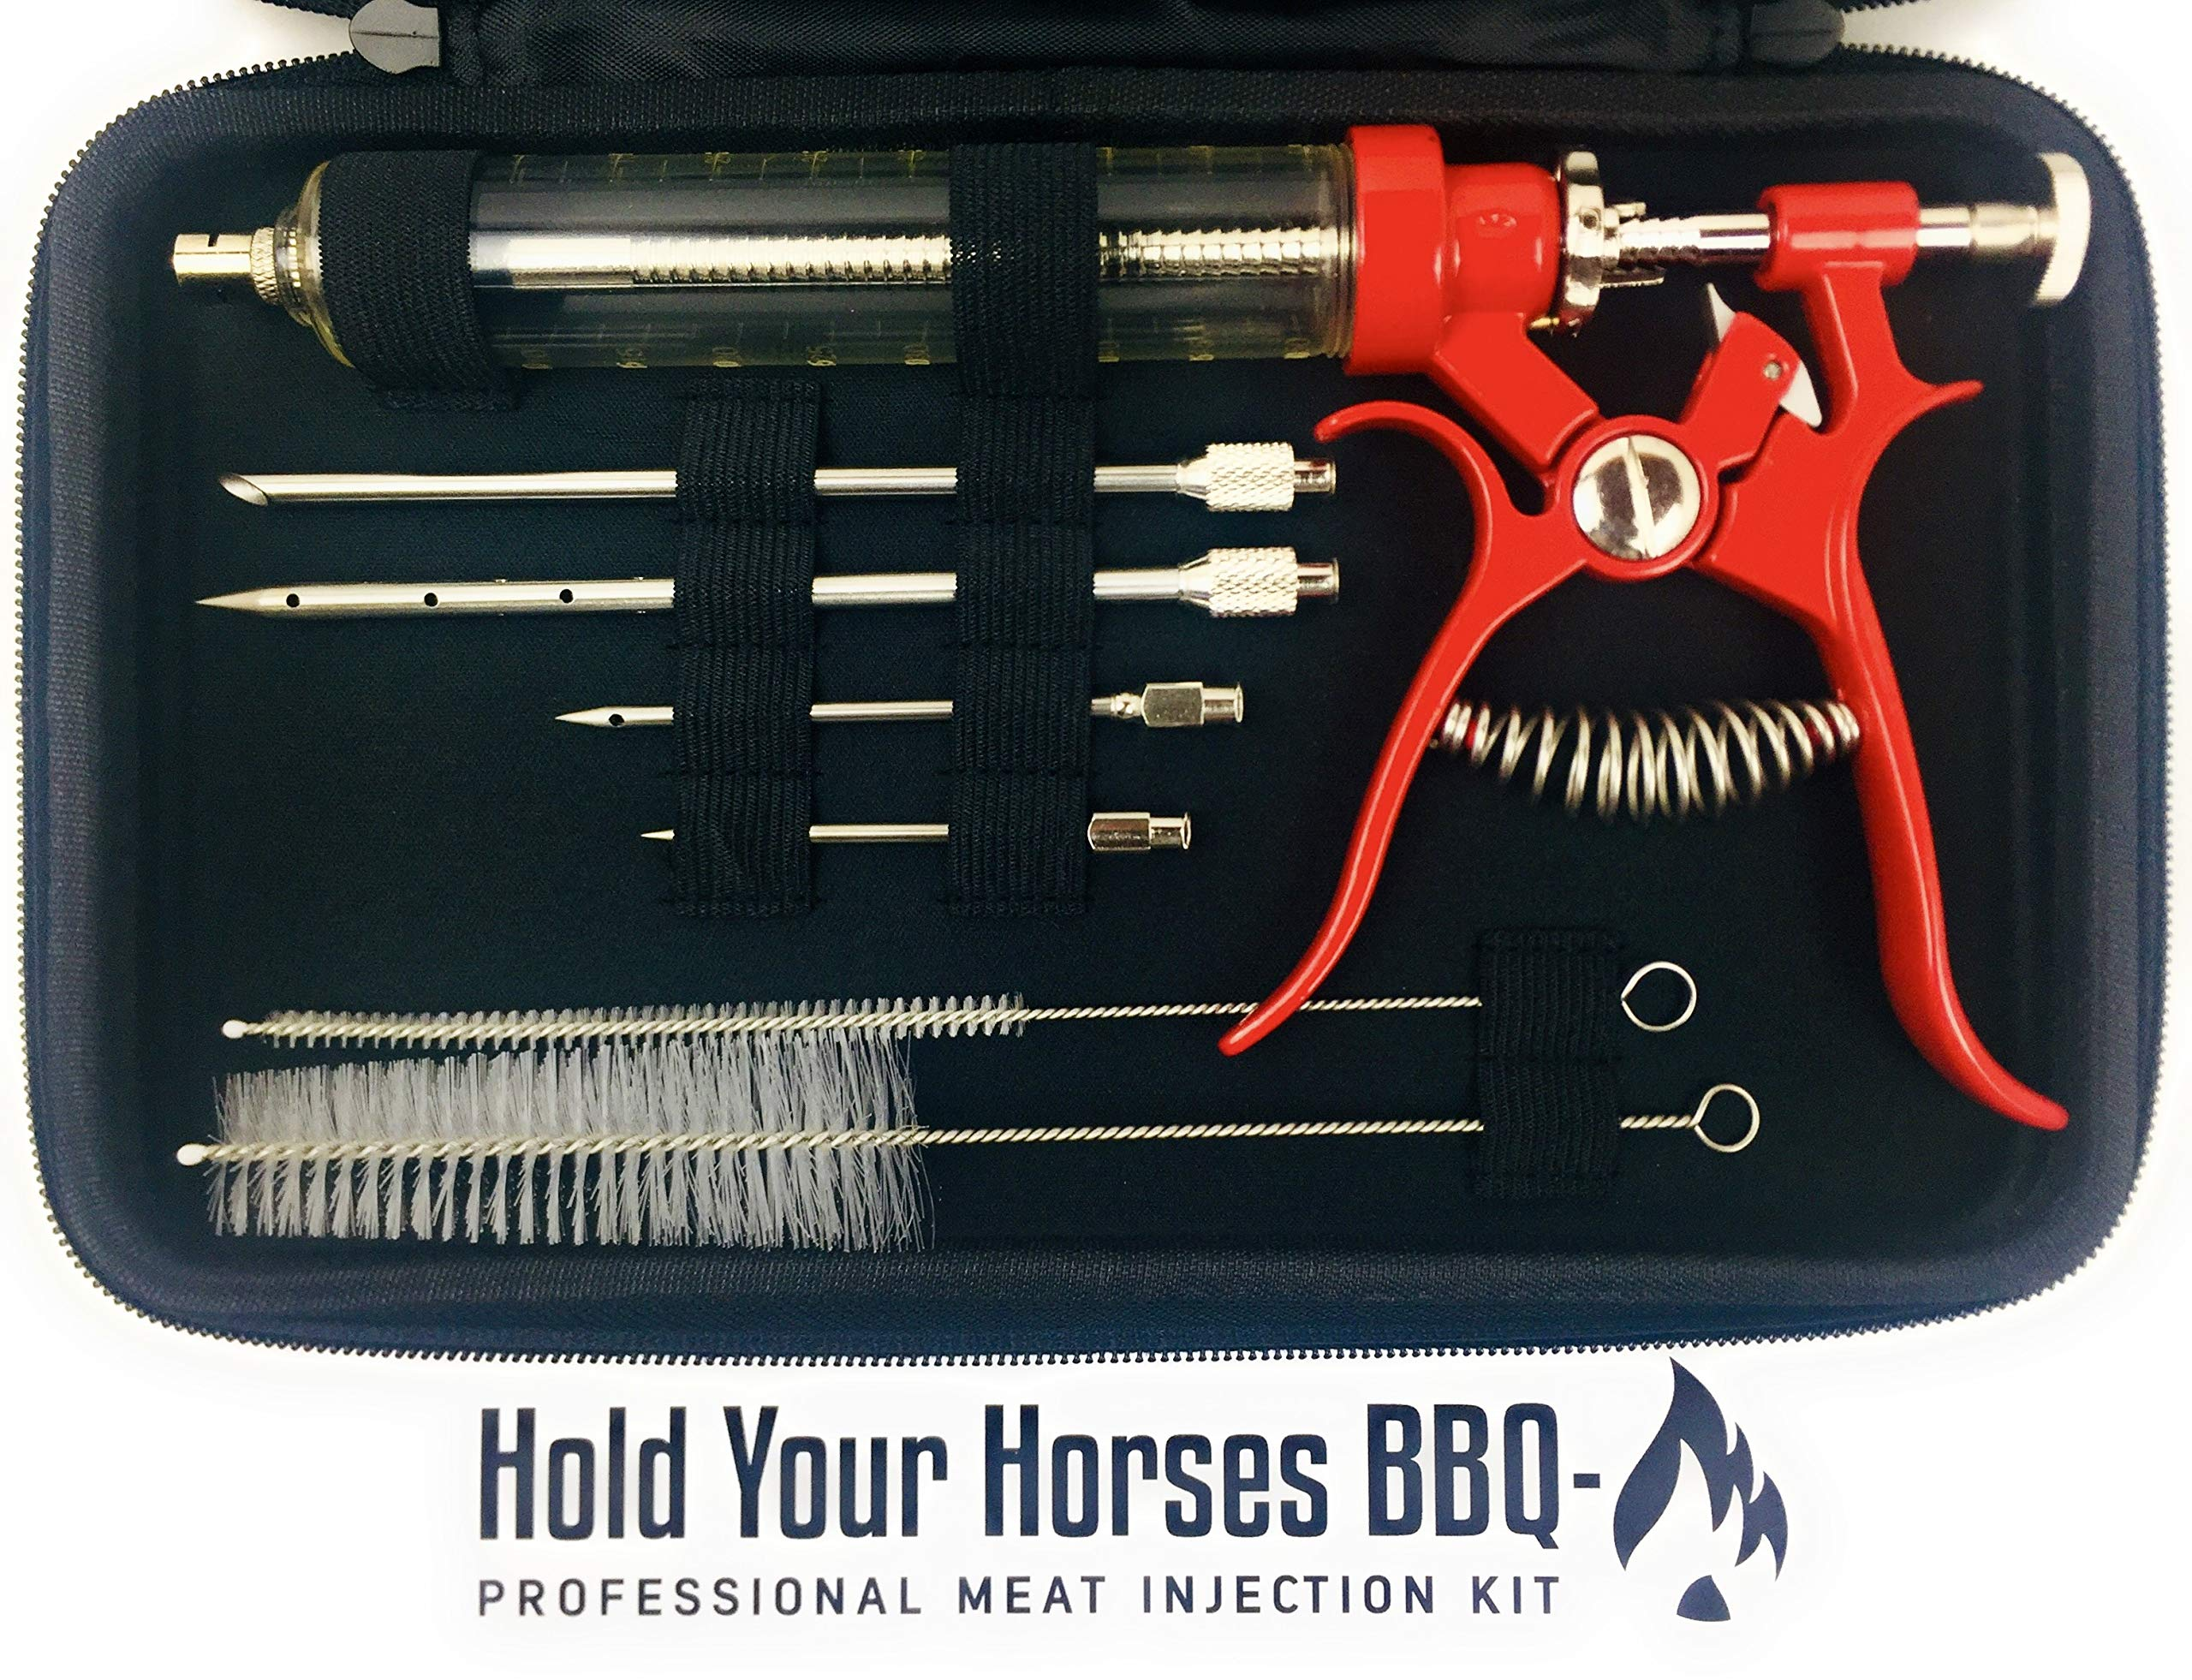 Hold Your Horses BBQ Marinade Meat Injector Gun Kit with CASE, Cleaning Brushes, 2 oz Large Capacity Barrel and 4 Professional Commercial Grade Stainless Needles by Hold Your Horses BBQ